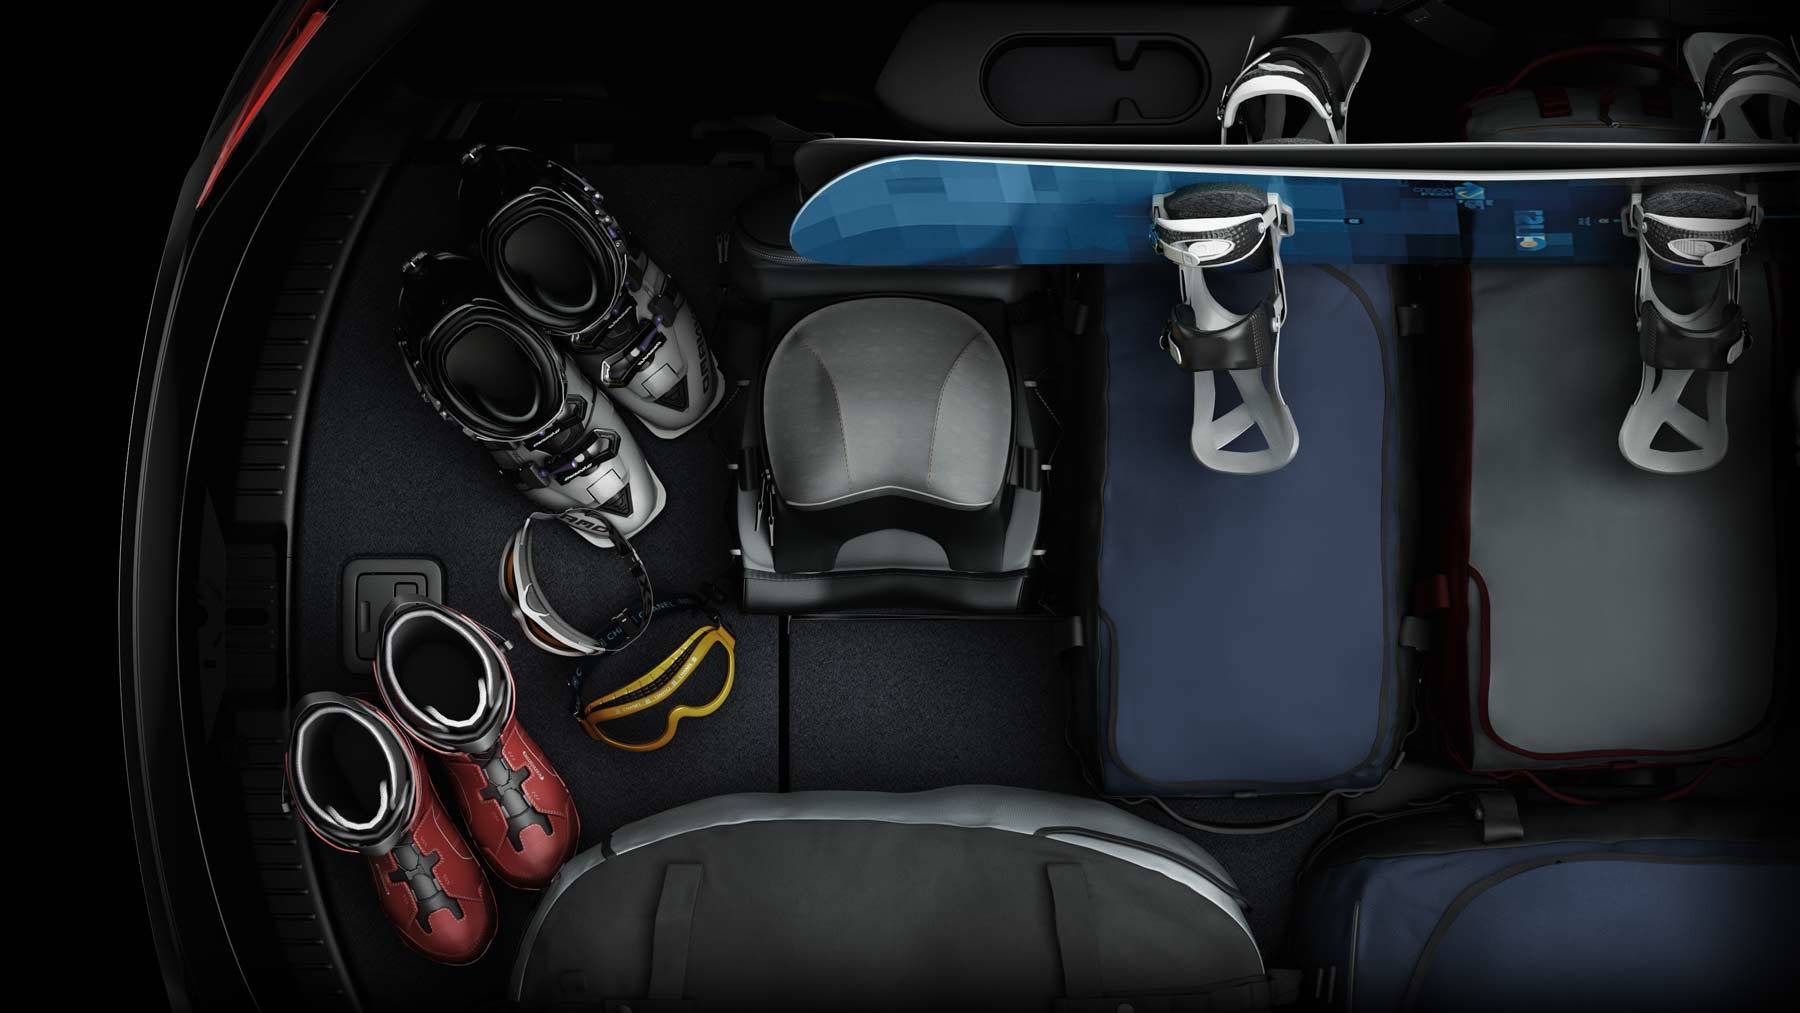 You'll Find Plenty of Space in the Mazda CX-9 for All Your Gear!